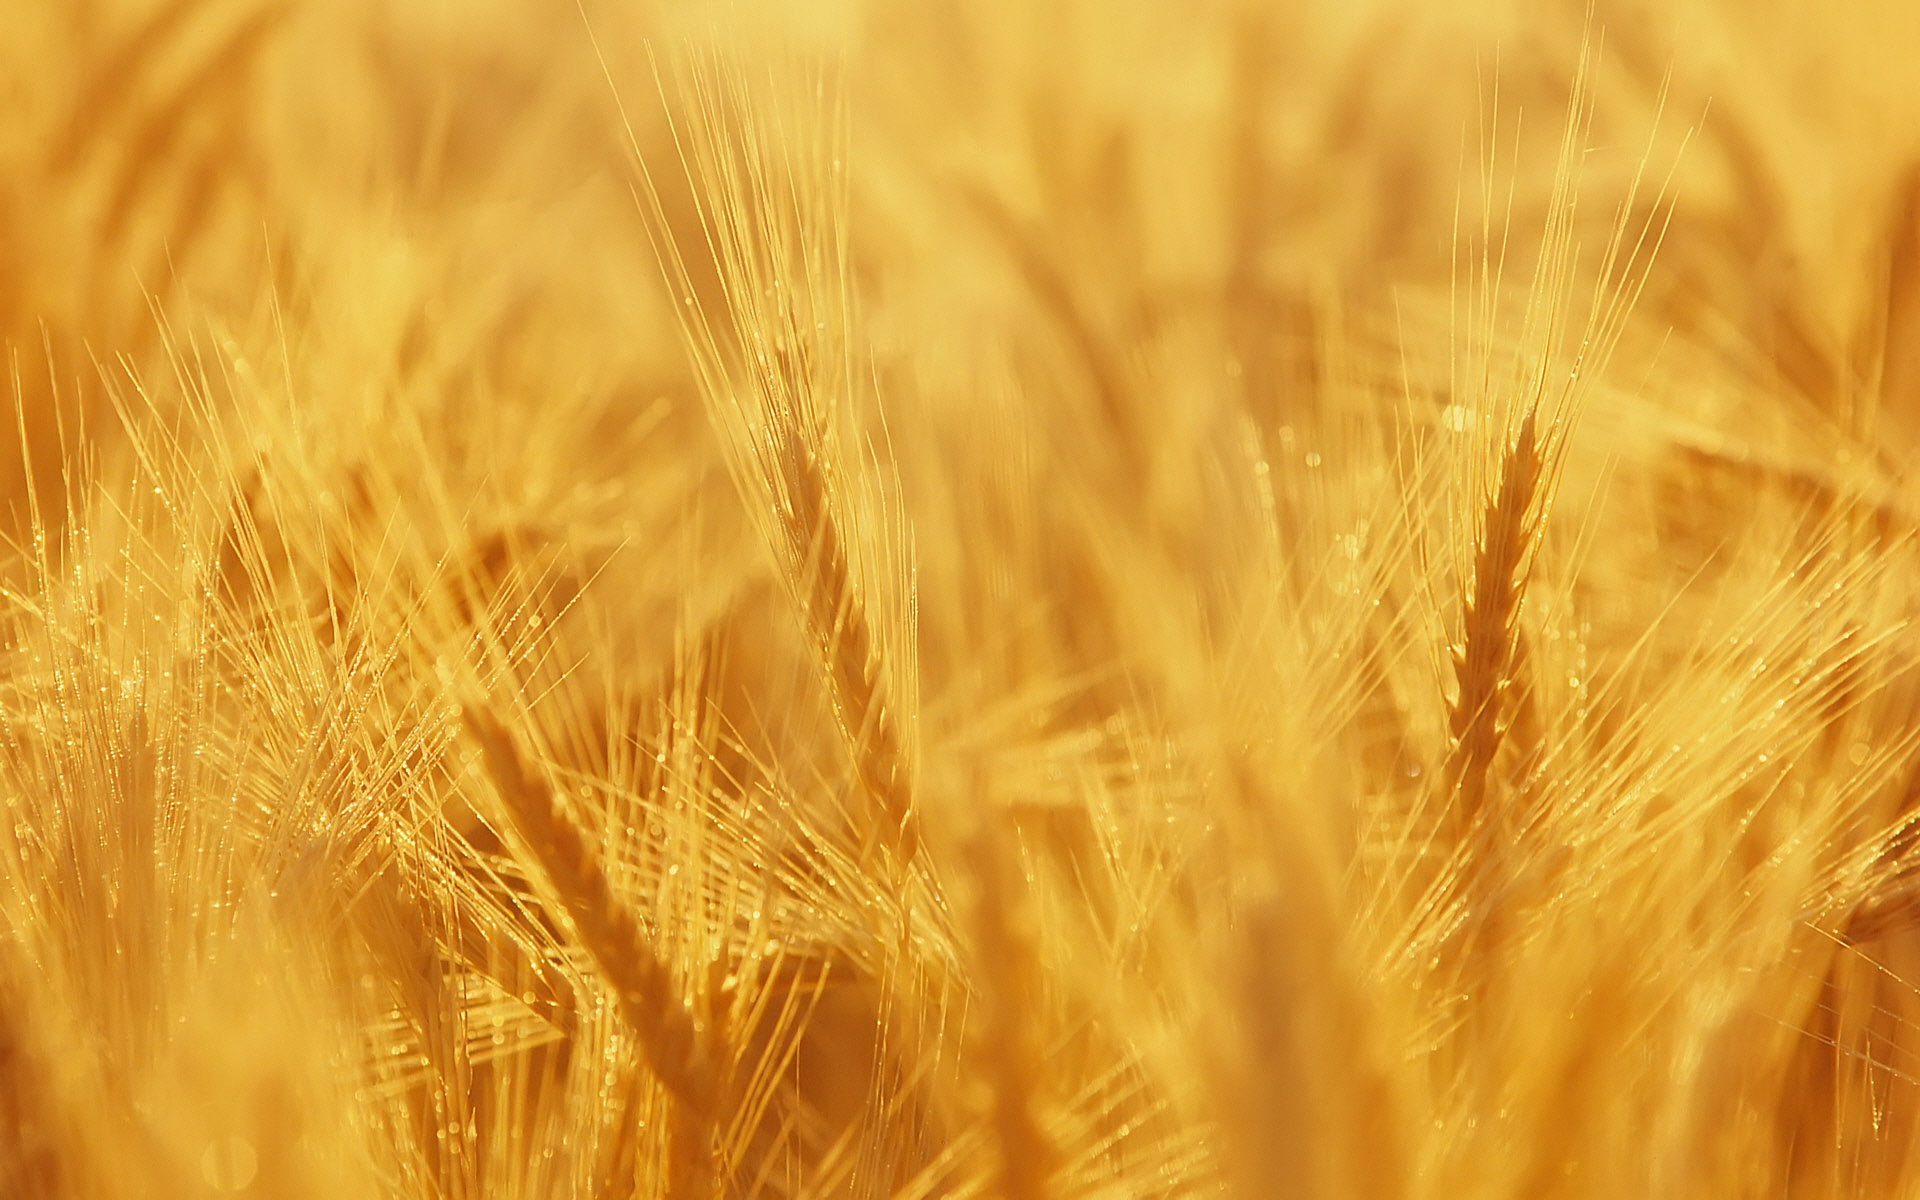 Wallpaper Field 4k Hd Wallpaper Wheat Spikes Sky: Wheat Wallpapers, Photos And Desktop Backgrounds Up To 8K